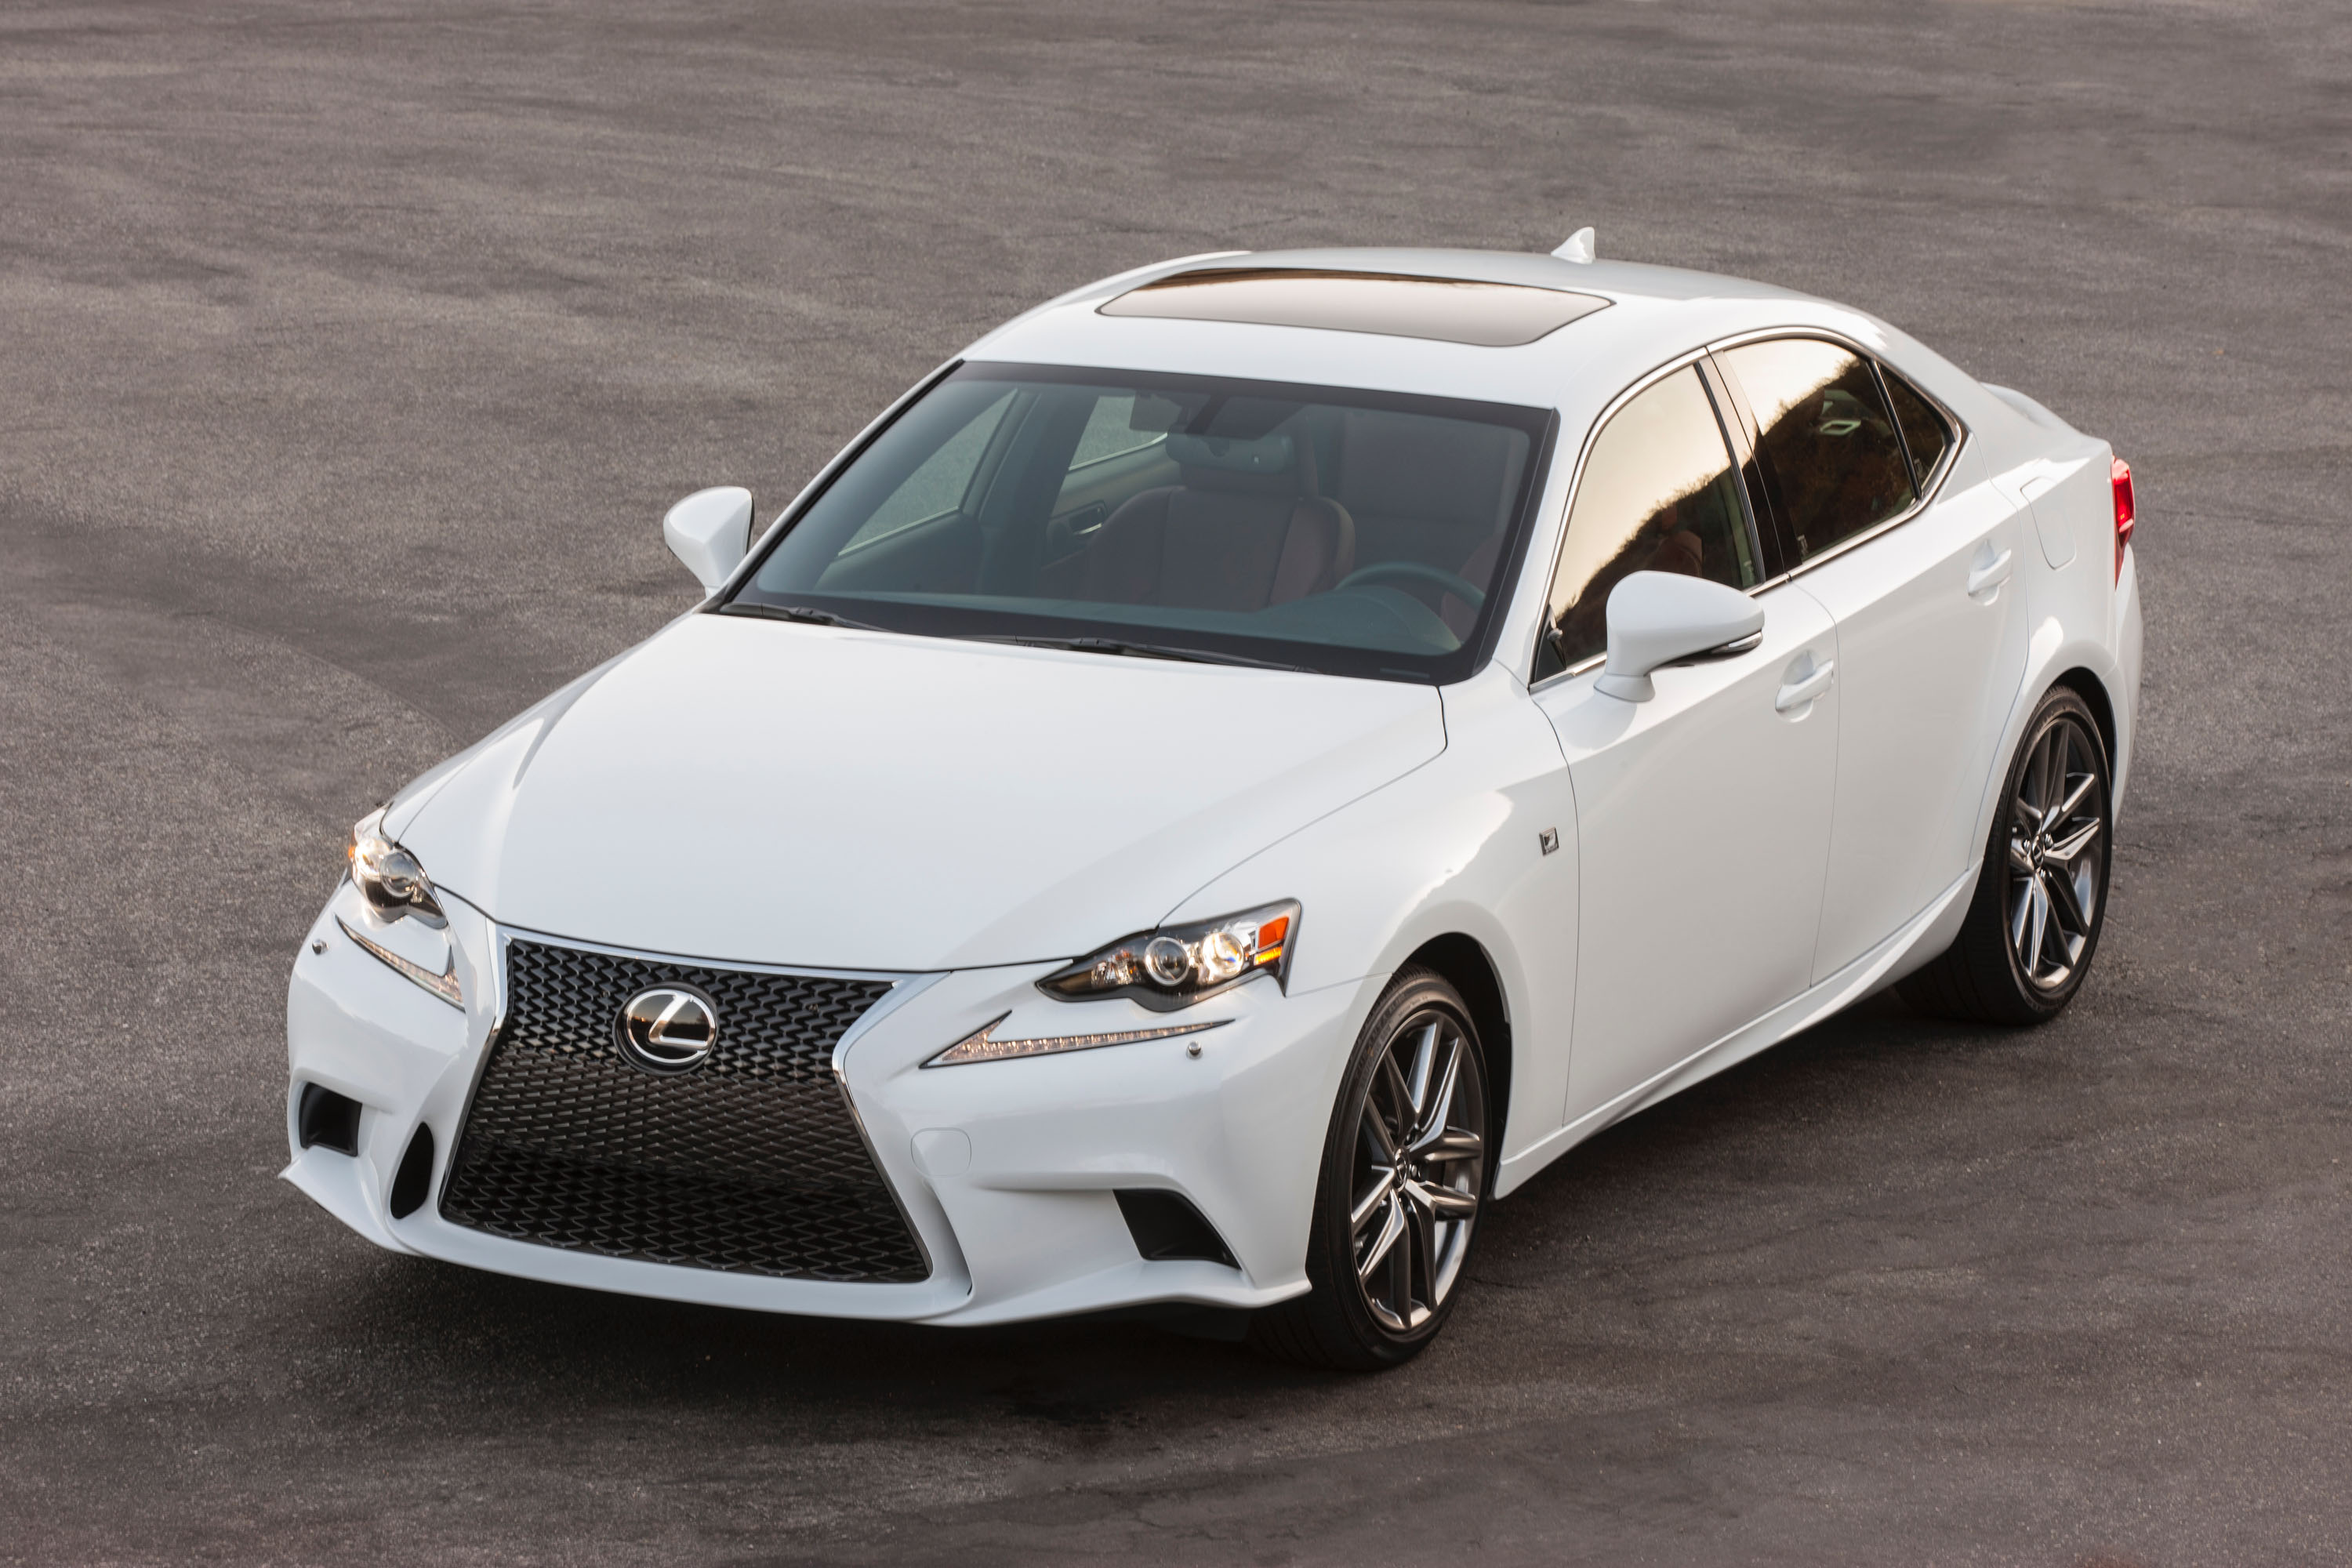 specials of deals deal f on lexus amp beautiful tips great ct type lease